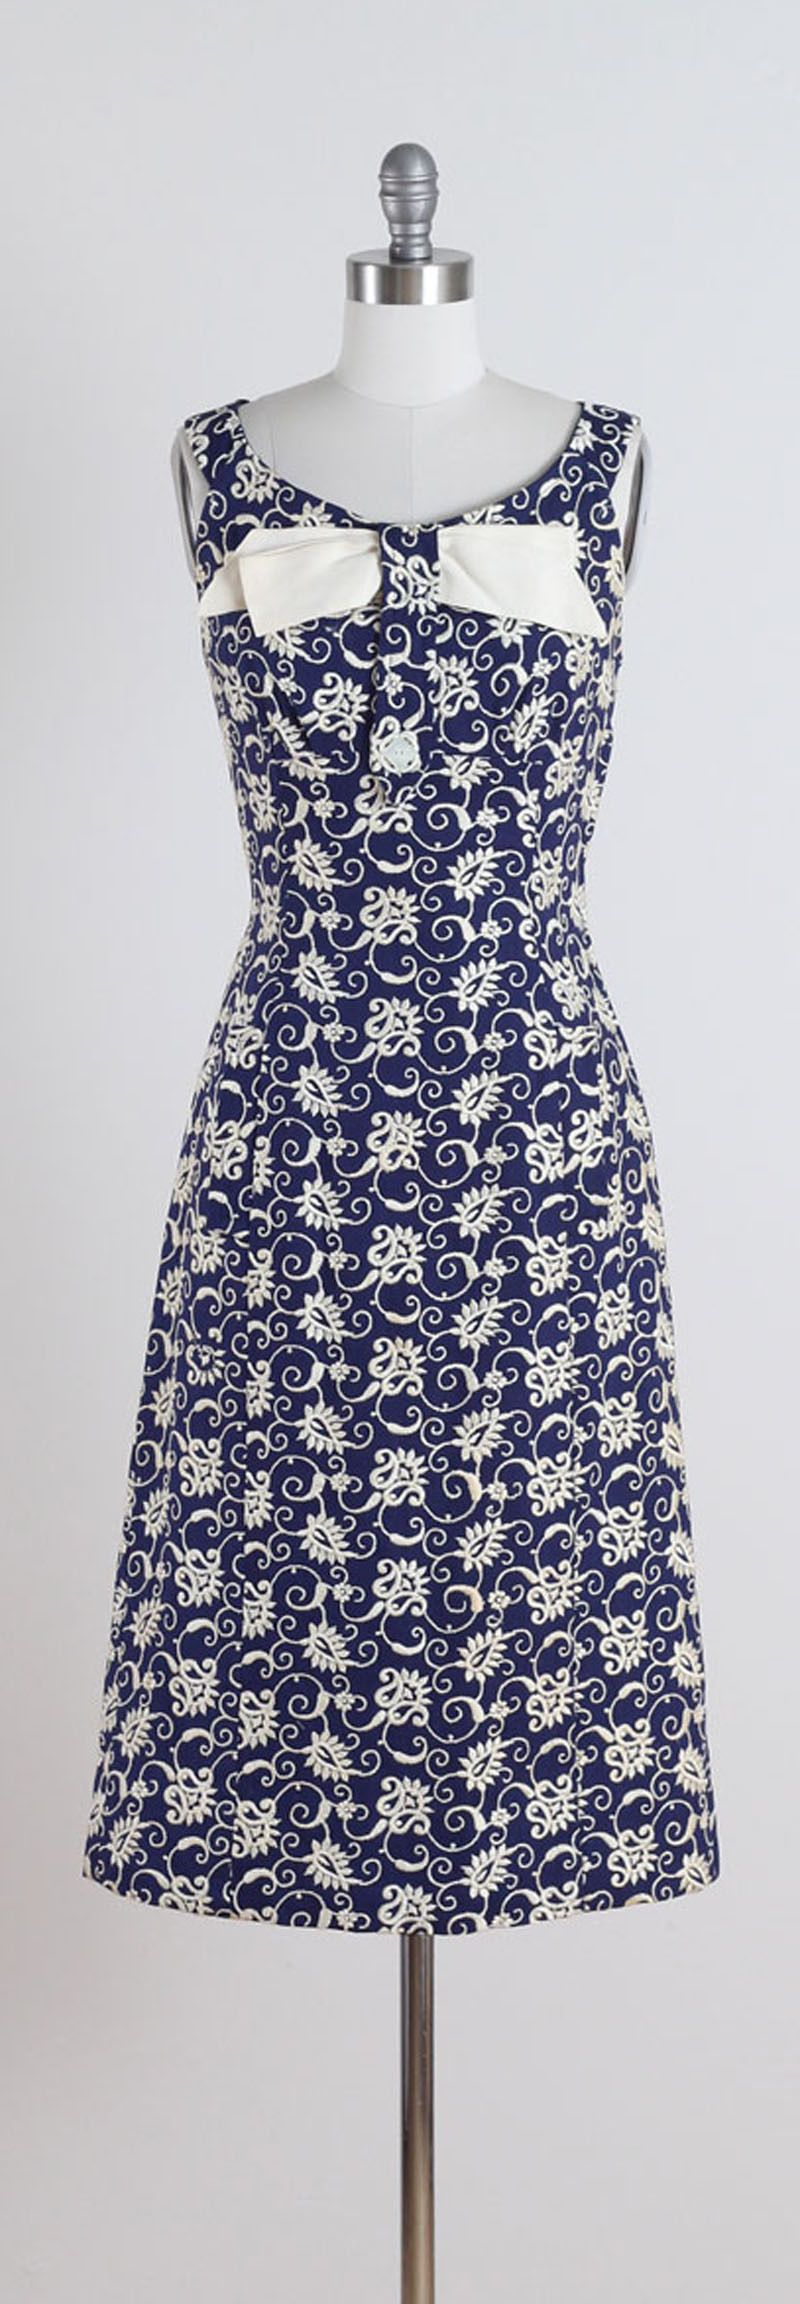 Vintage 1950s Navy Embroidered Irish Linen Dress | Pinterest ...